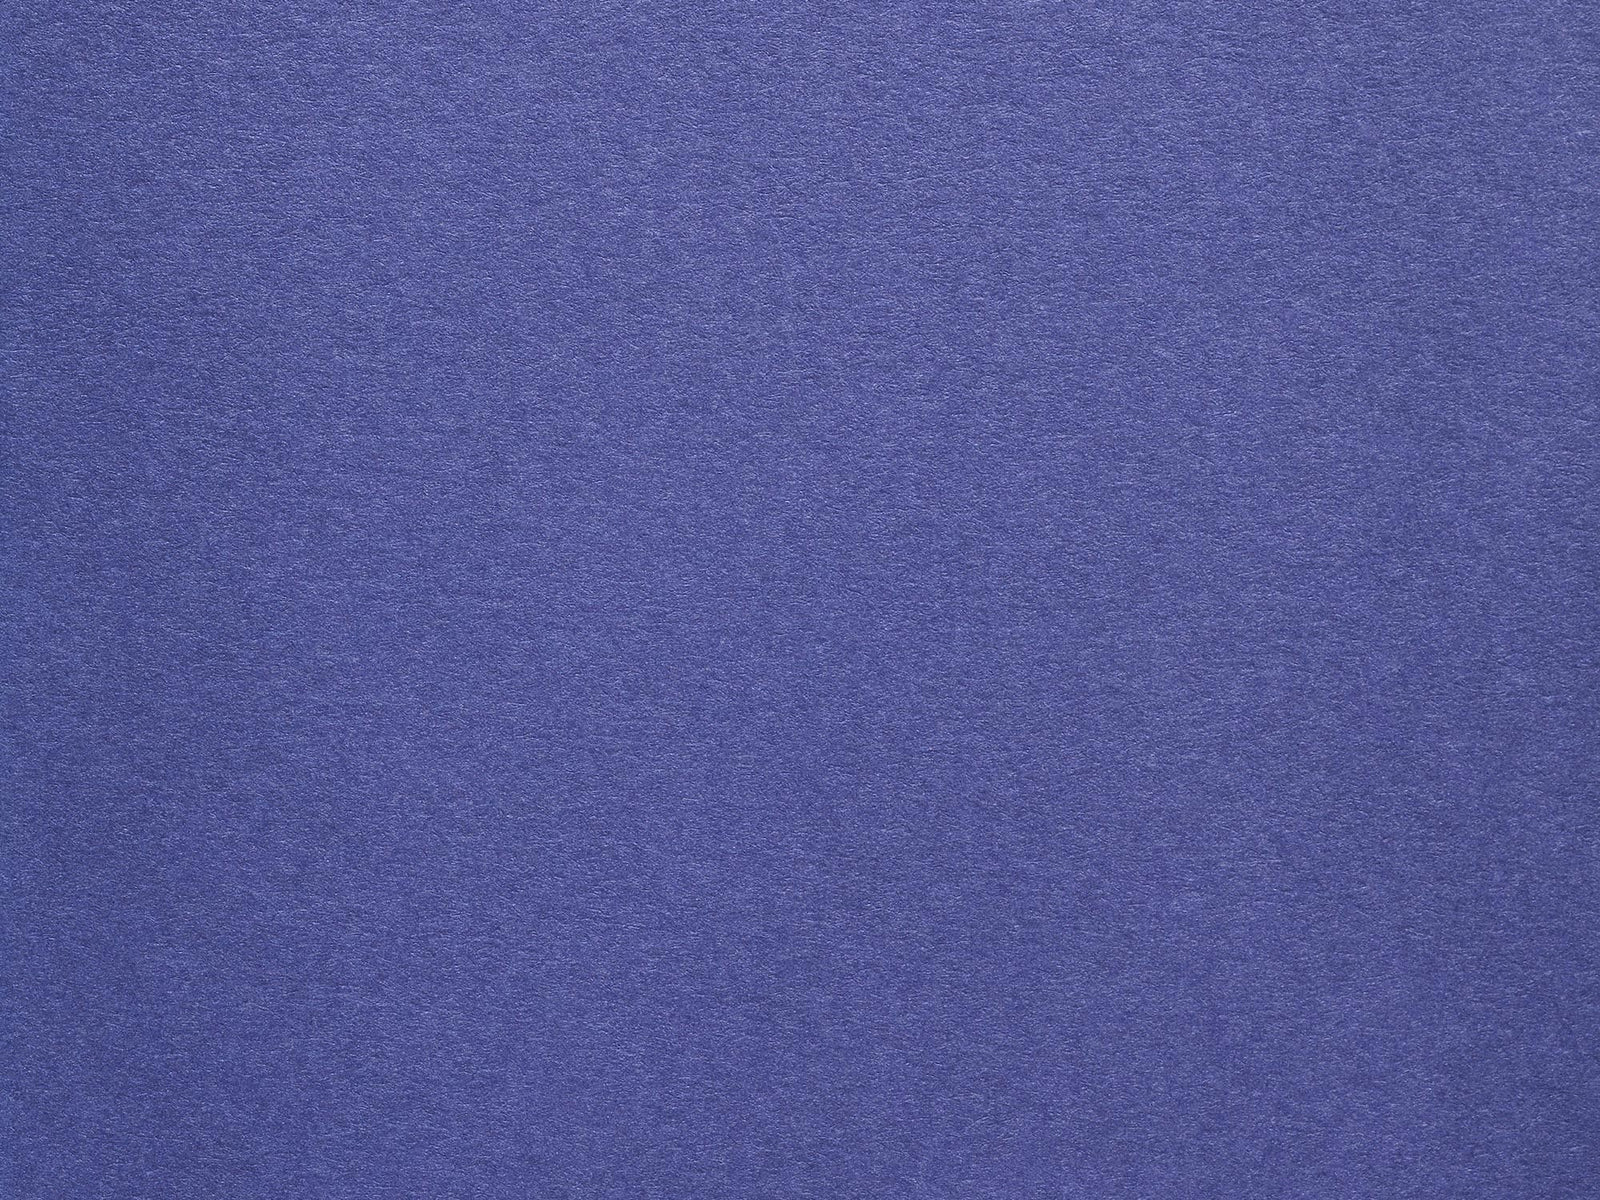 GF Smith Paper Colorplan Royal Blue Card